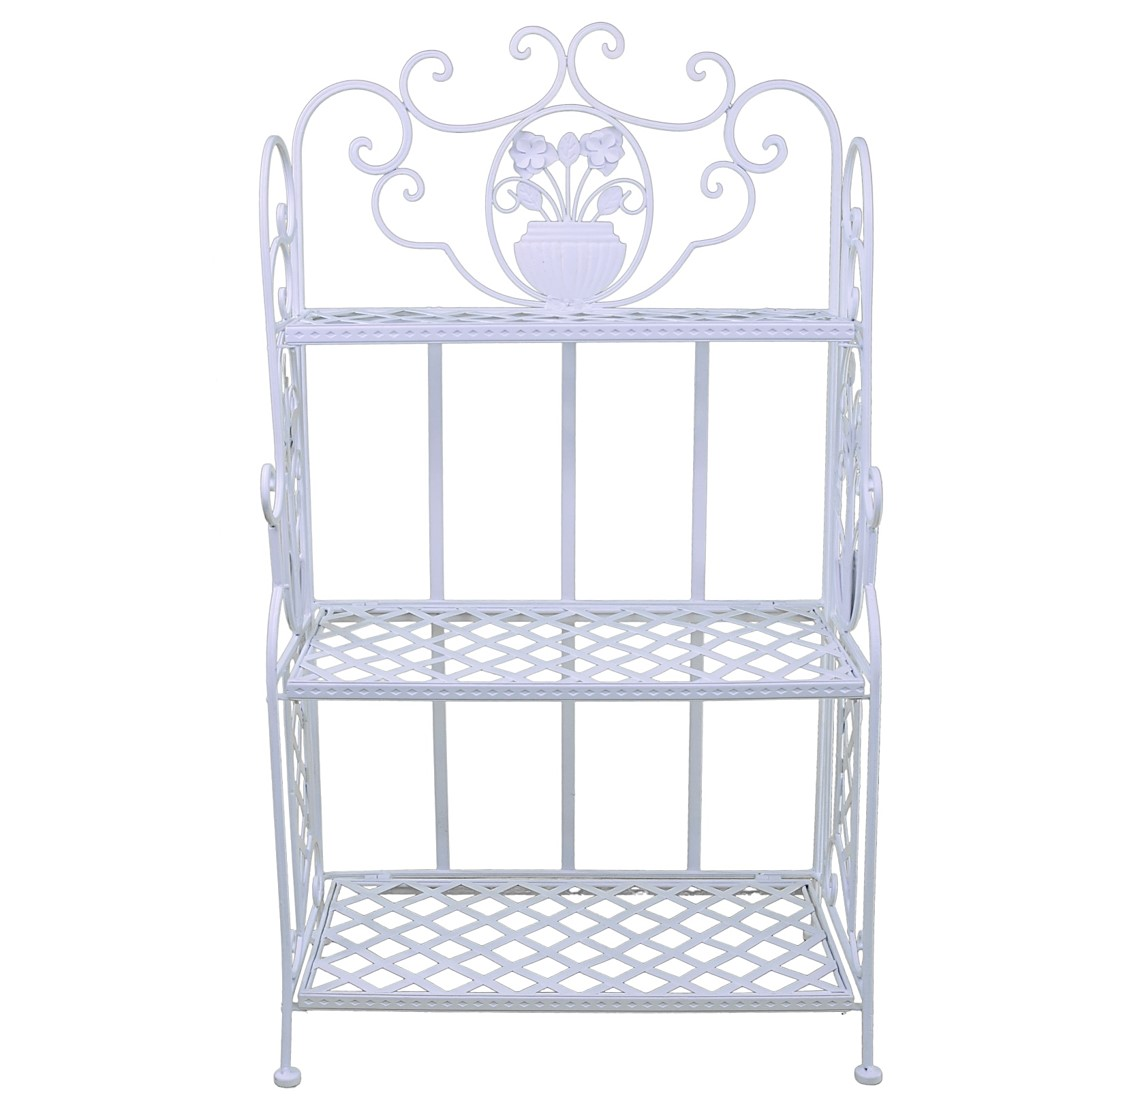 style ancienne etagere console bibliotheque de cuisine salle de bain fer banc ebay. Black Bedroom Furniture Sets. Home Design Ideas